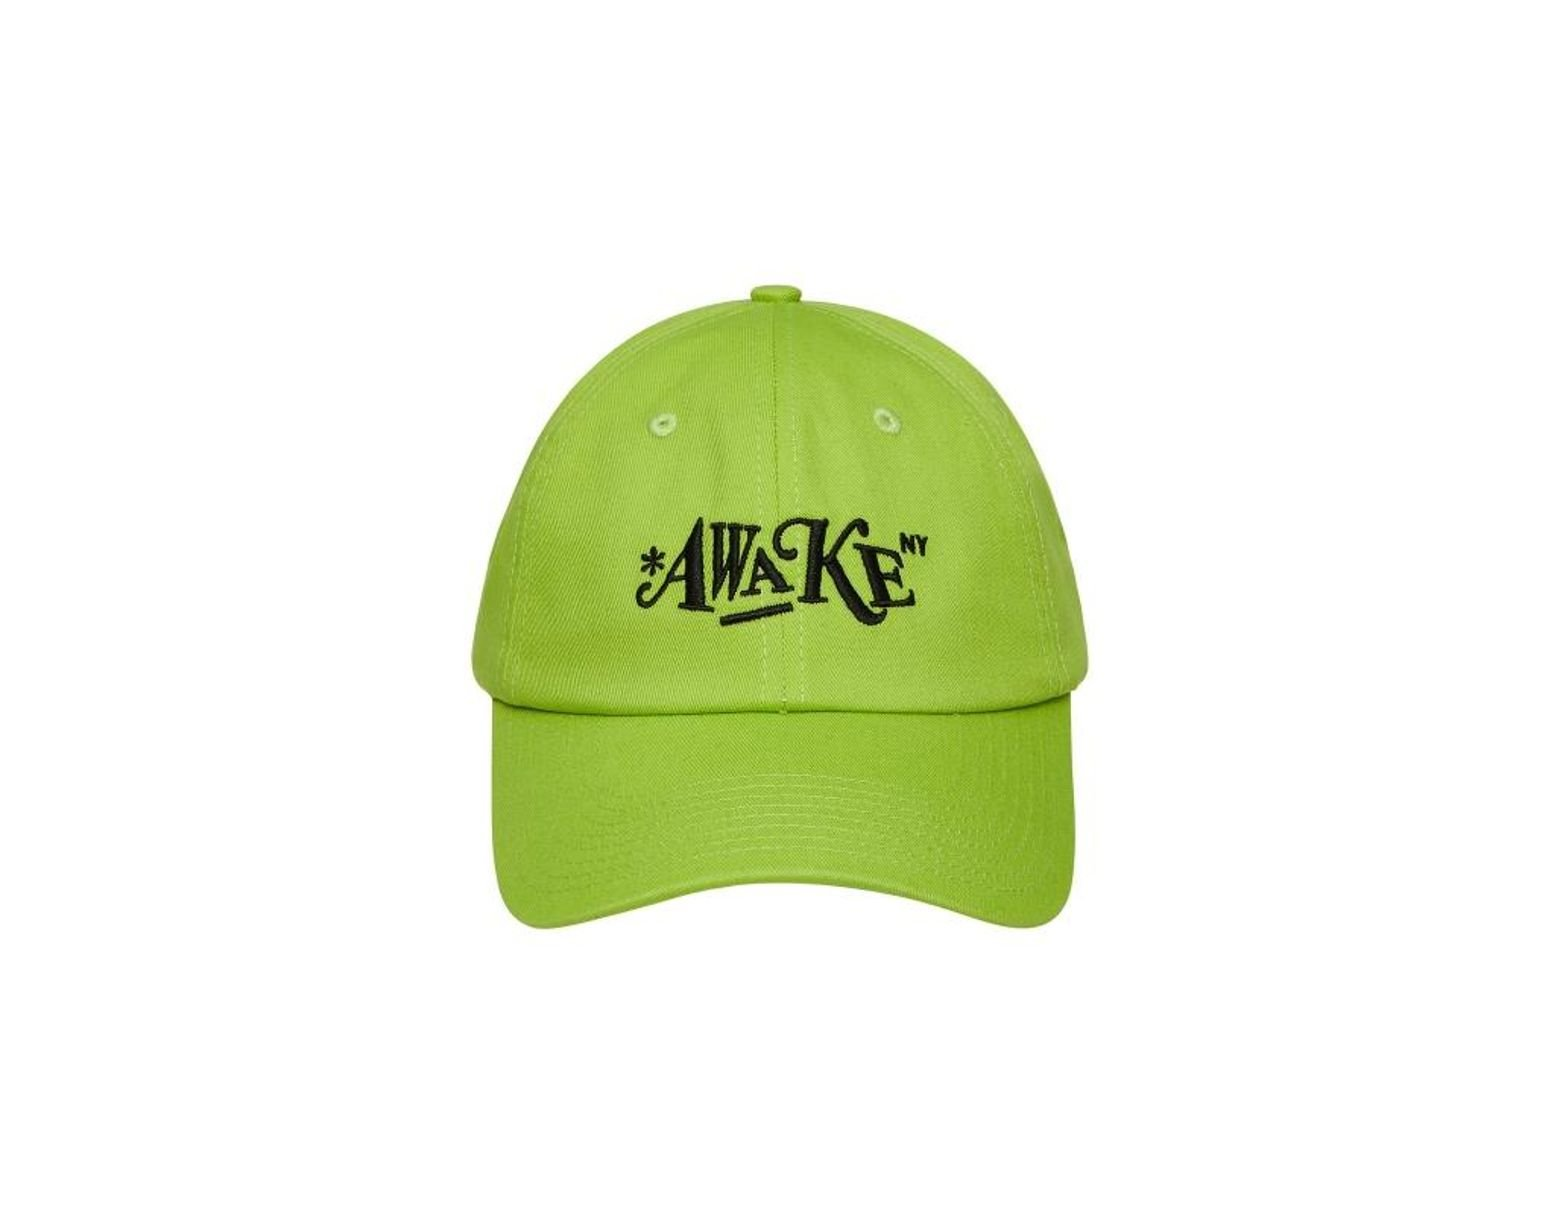 98f169ed AWAKE NY Distorted Logo Dad Cap in Green for Men - Lyst